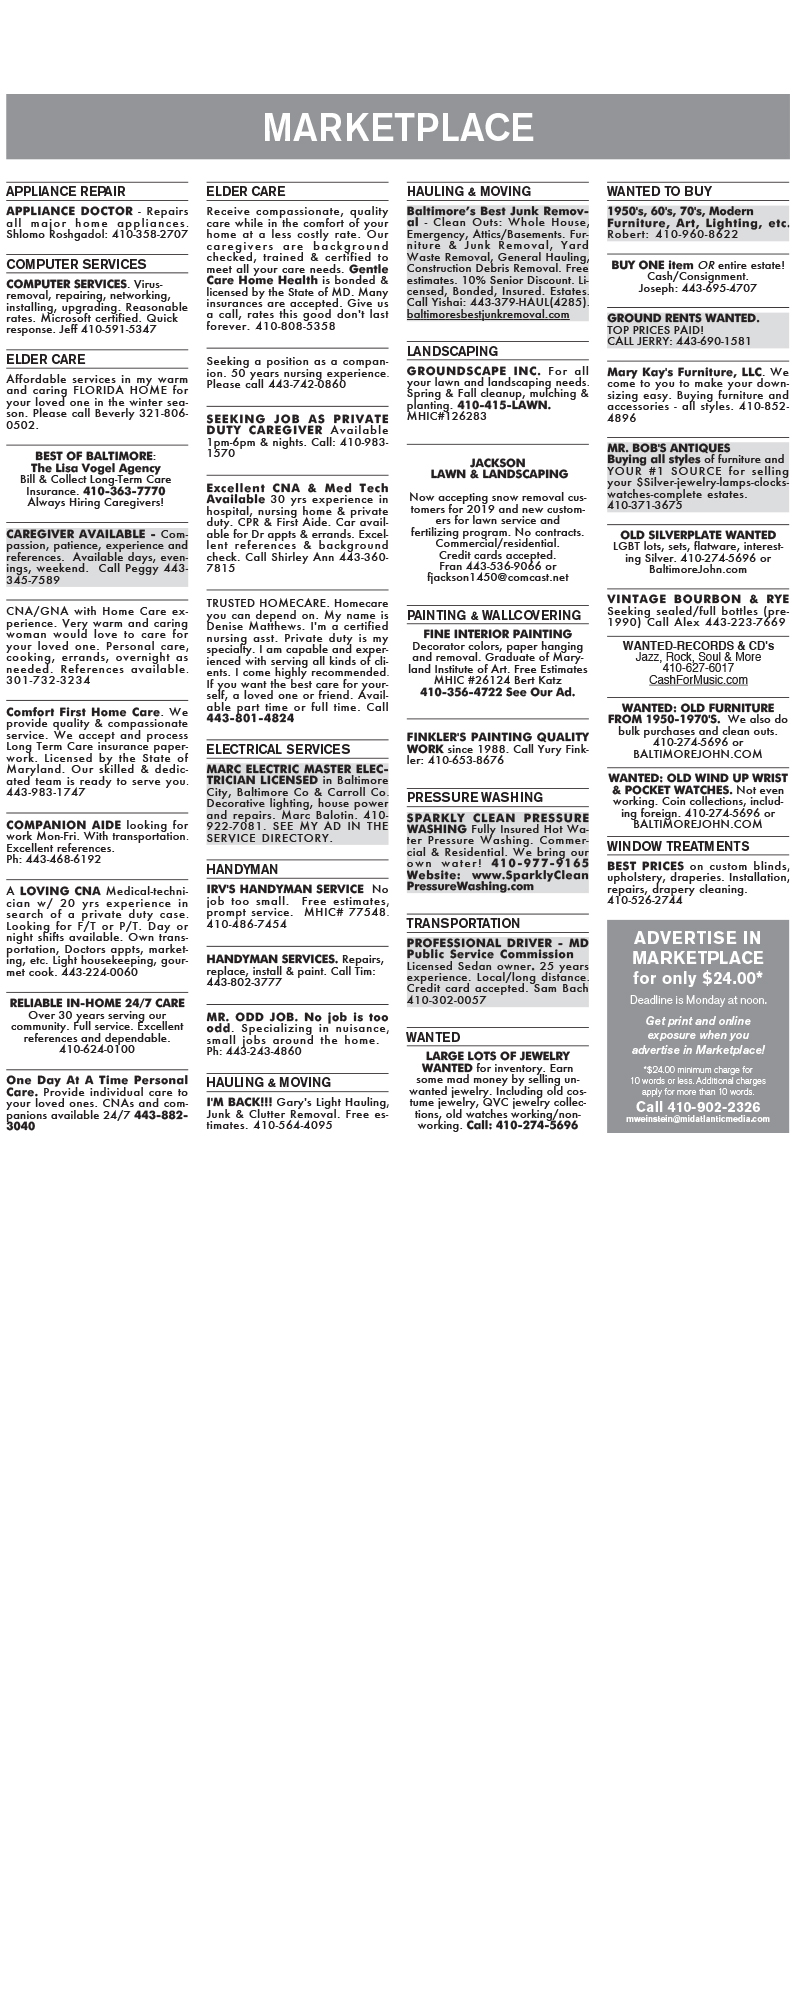 Classifieds (11-09) Wordpress - Baltimore Jewish Times